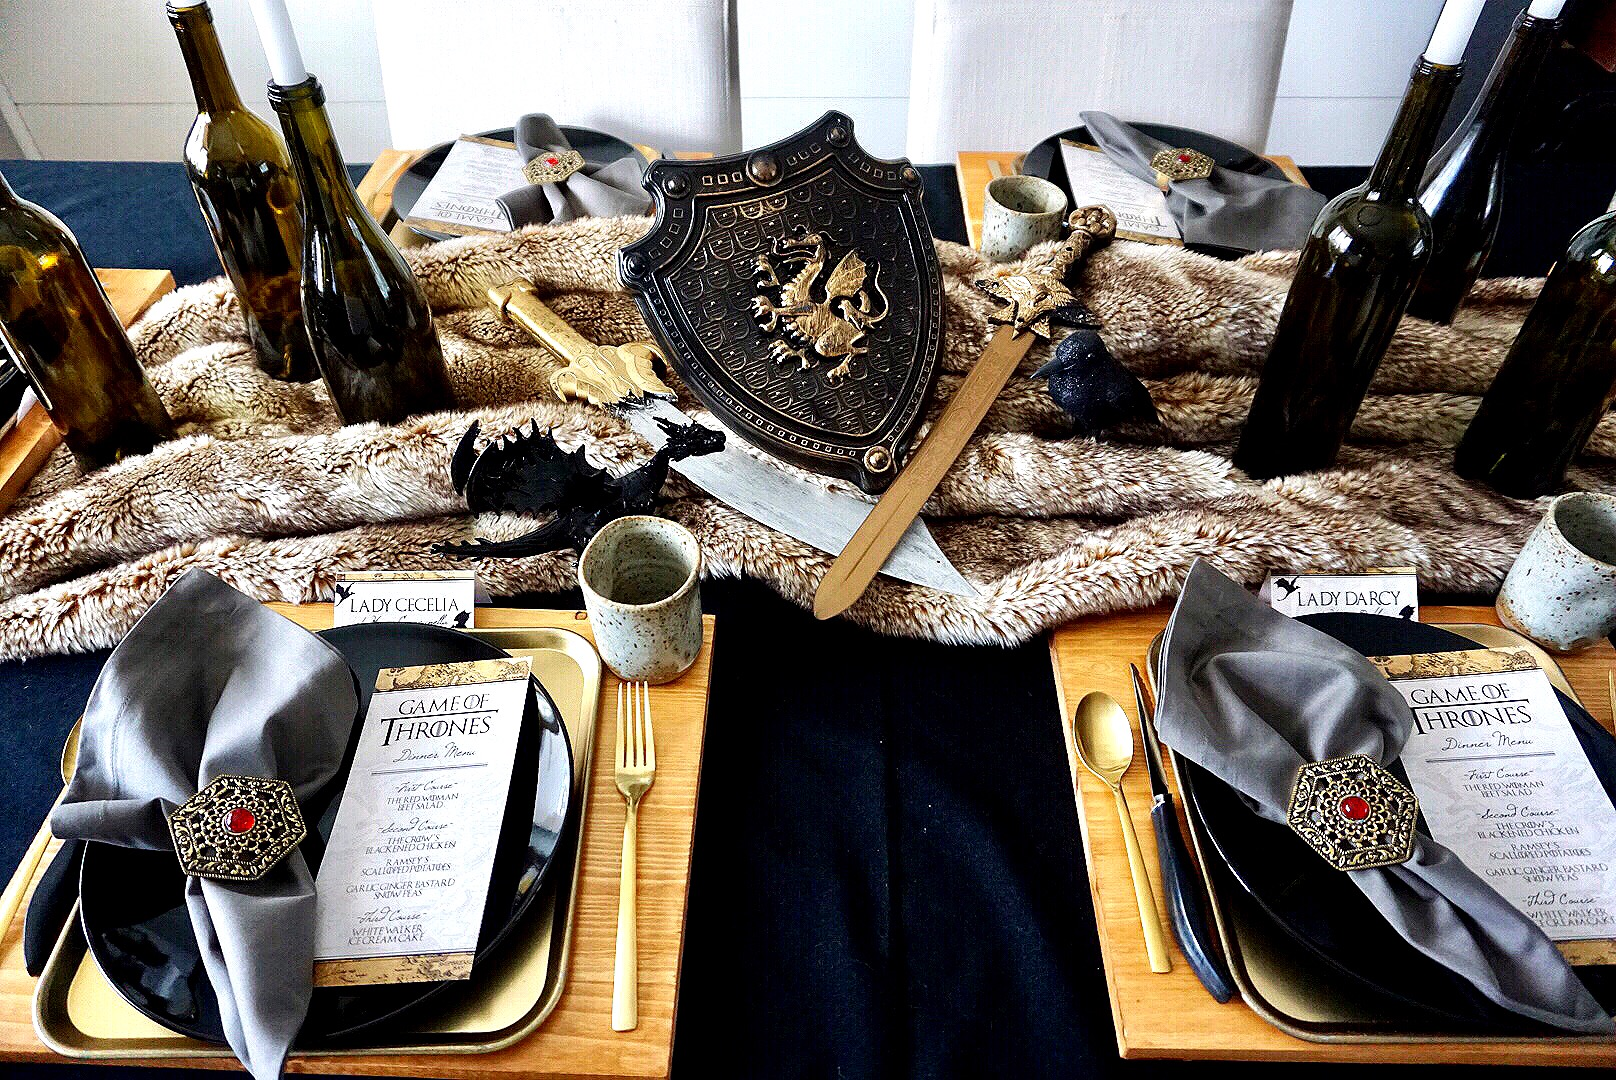 A fur blanket can double as a table runner for a Game of Thrones dinner party.